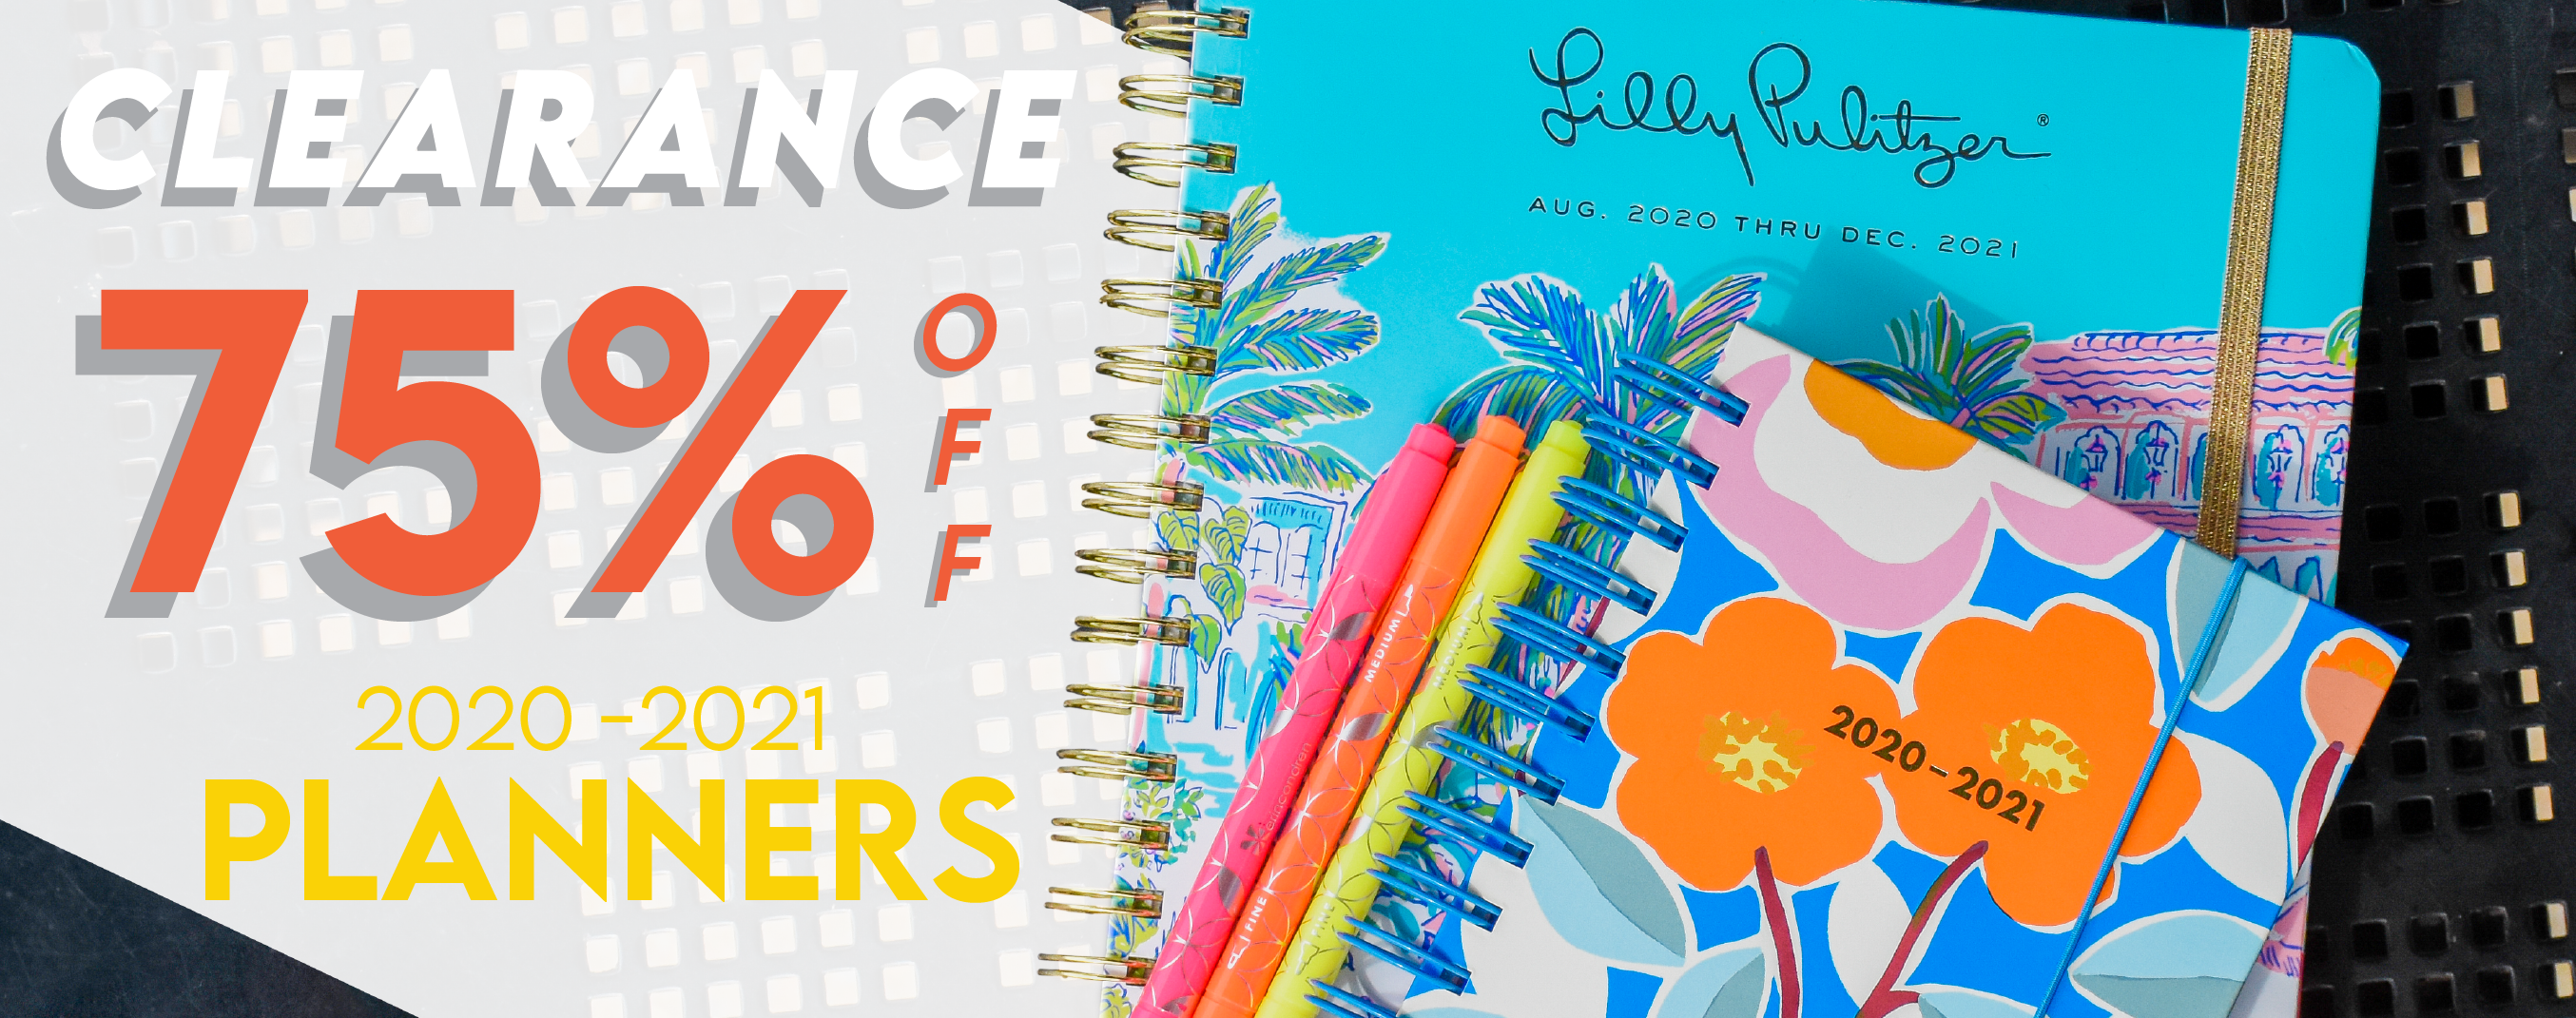 Shop 2020-2021 planners now with 75% off through June 26th.